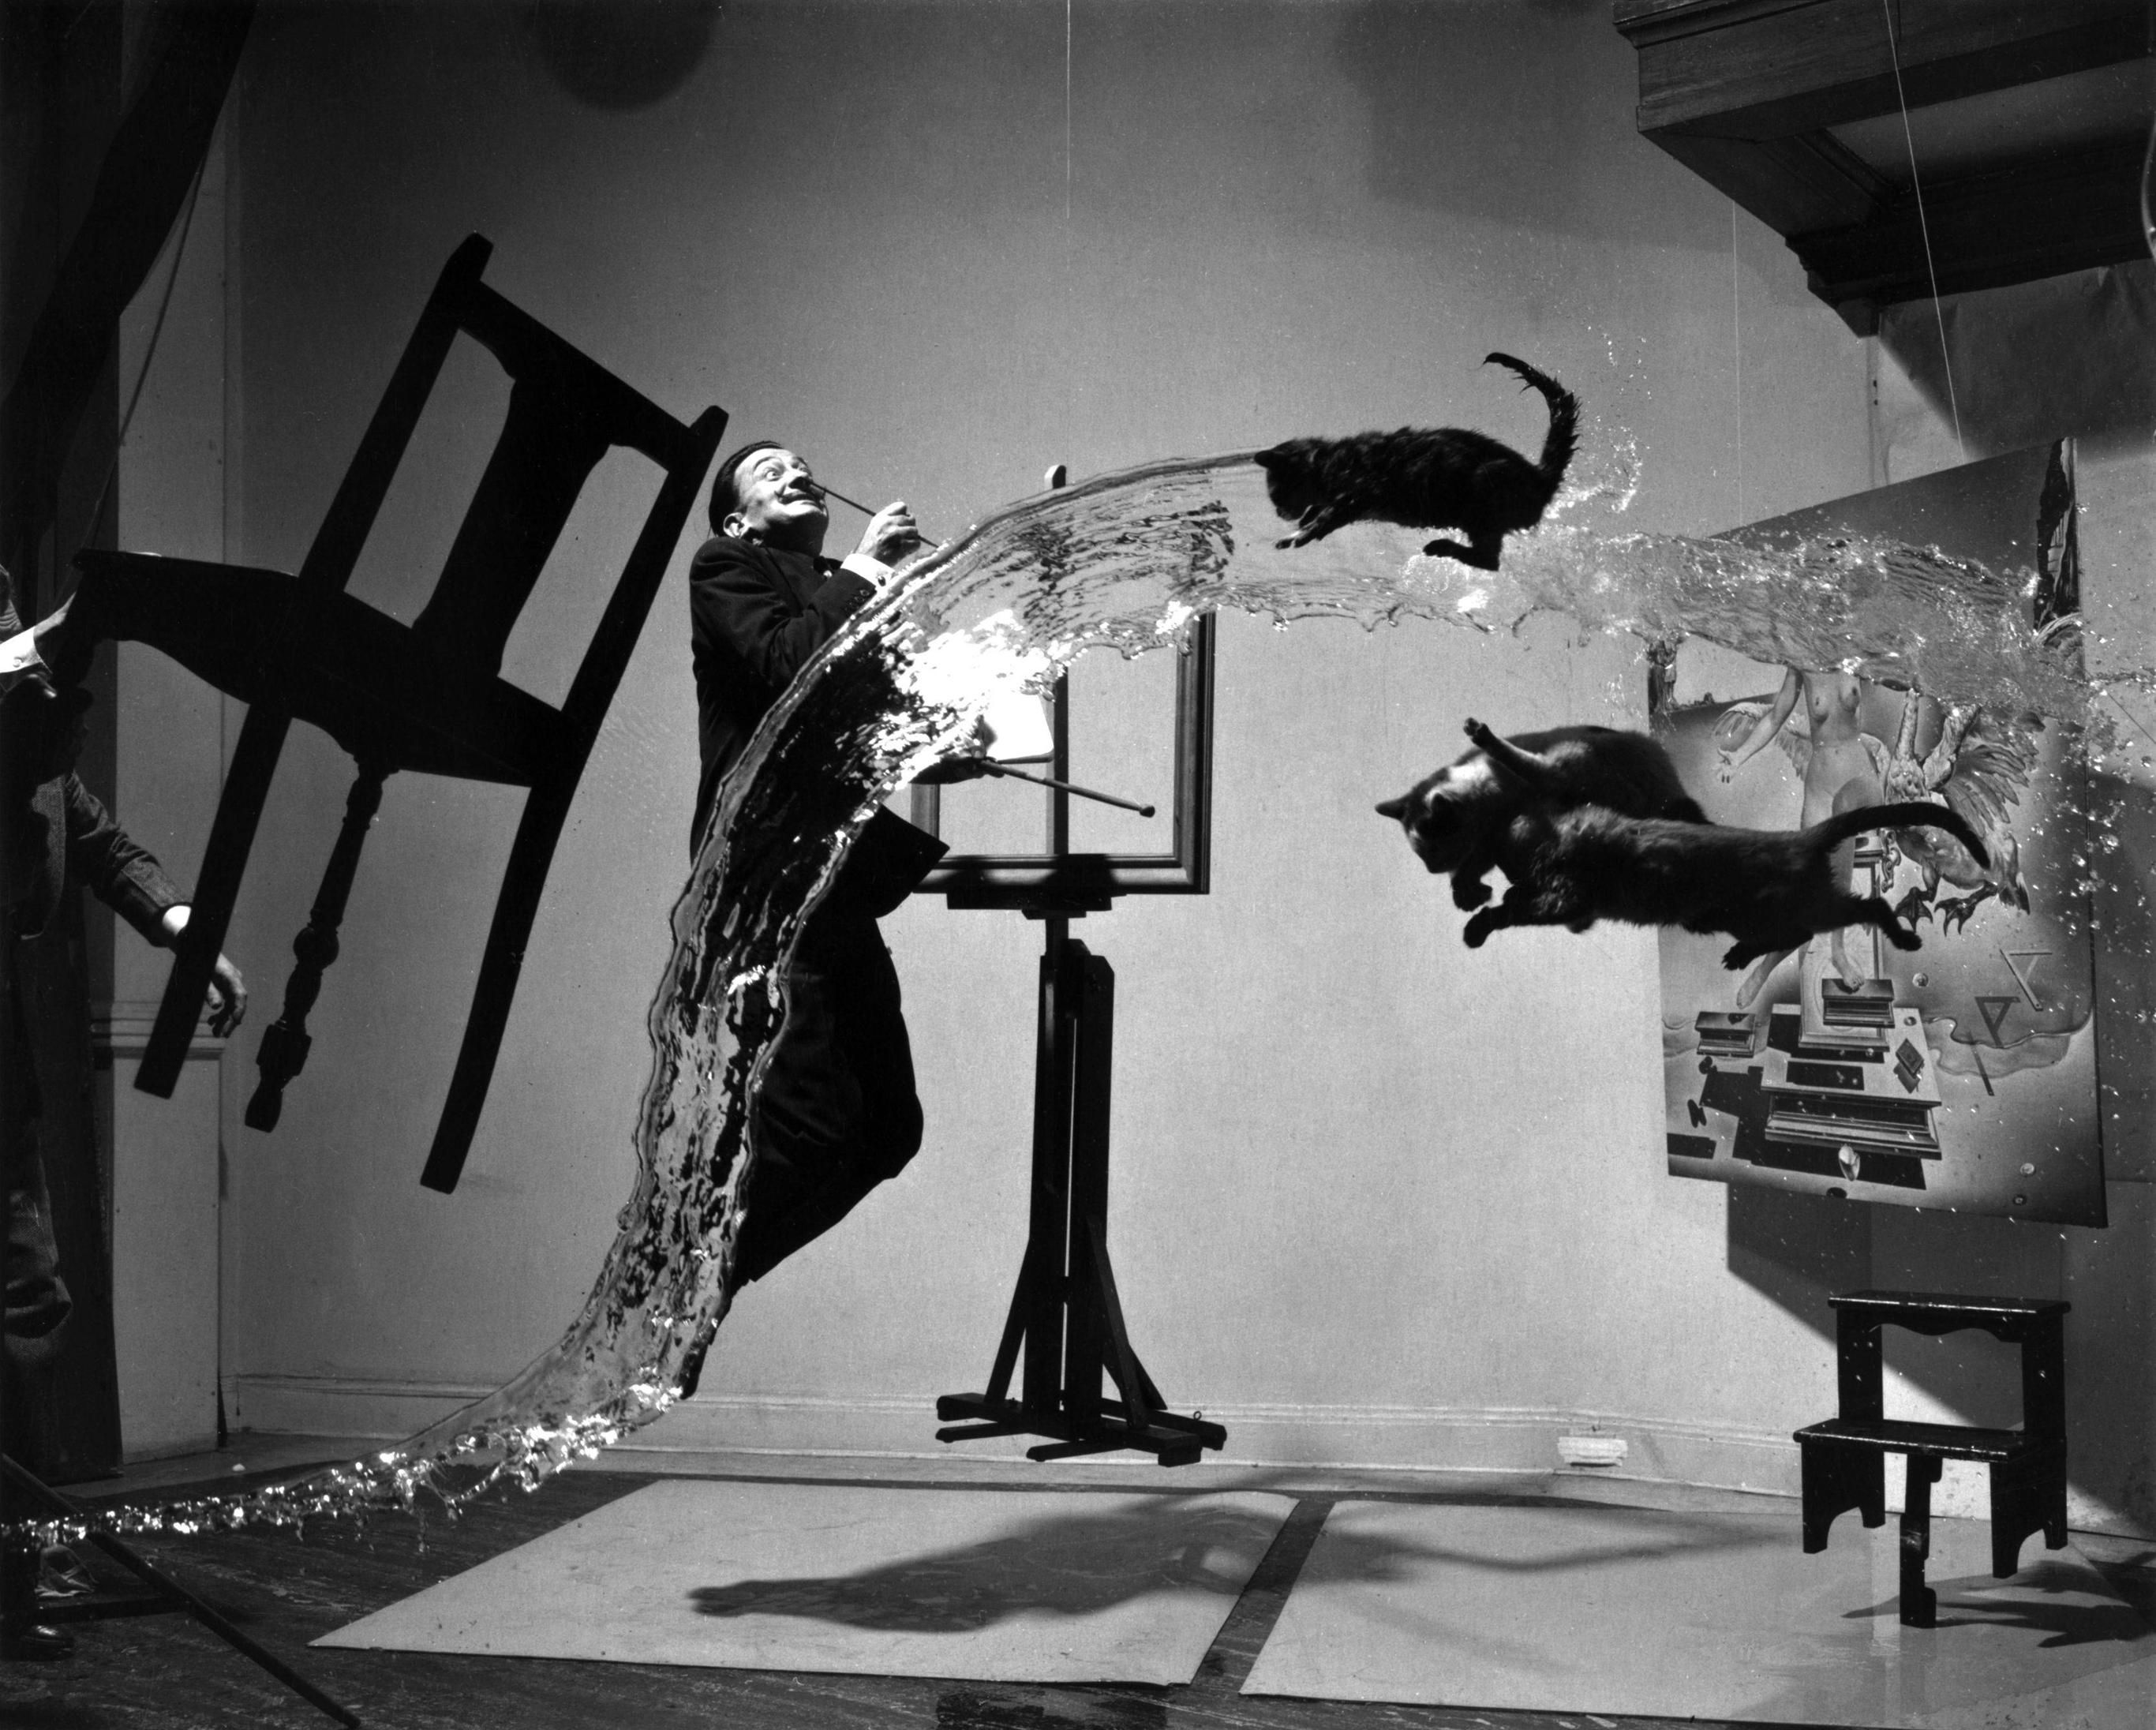 Before there was Photoshop, there was Dali.